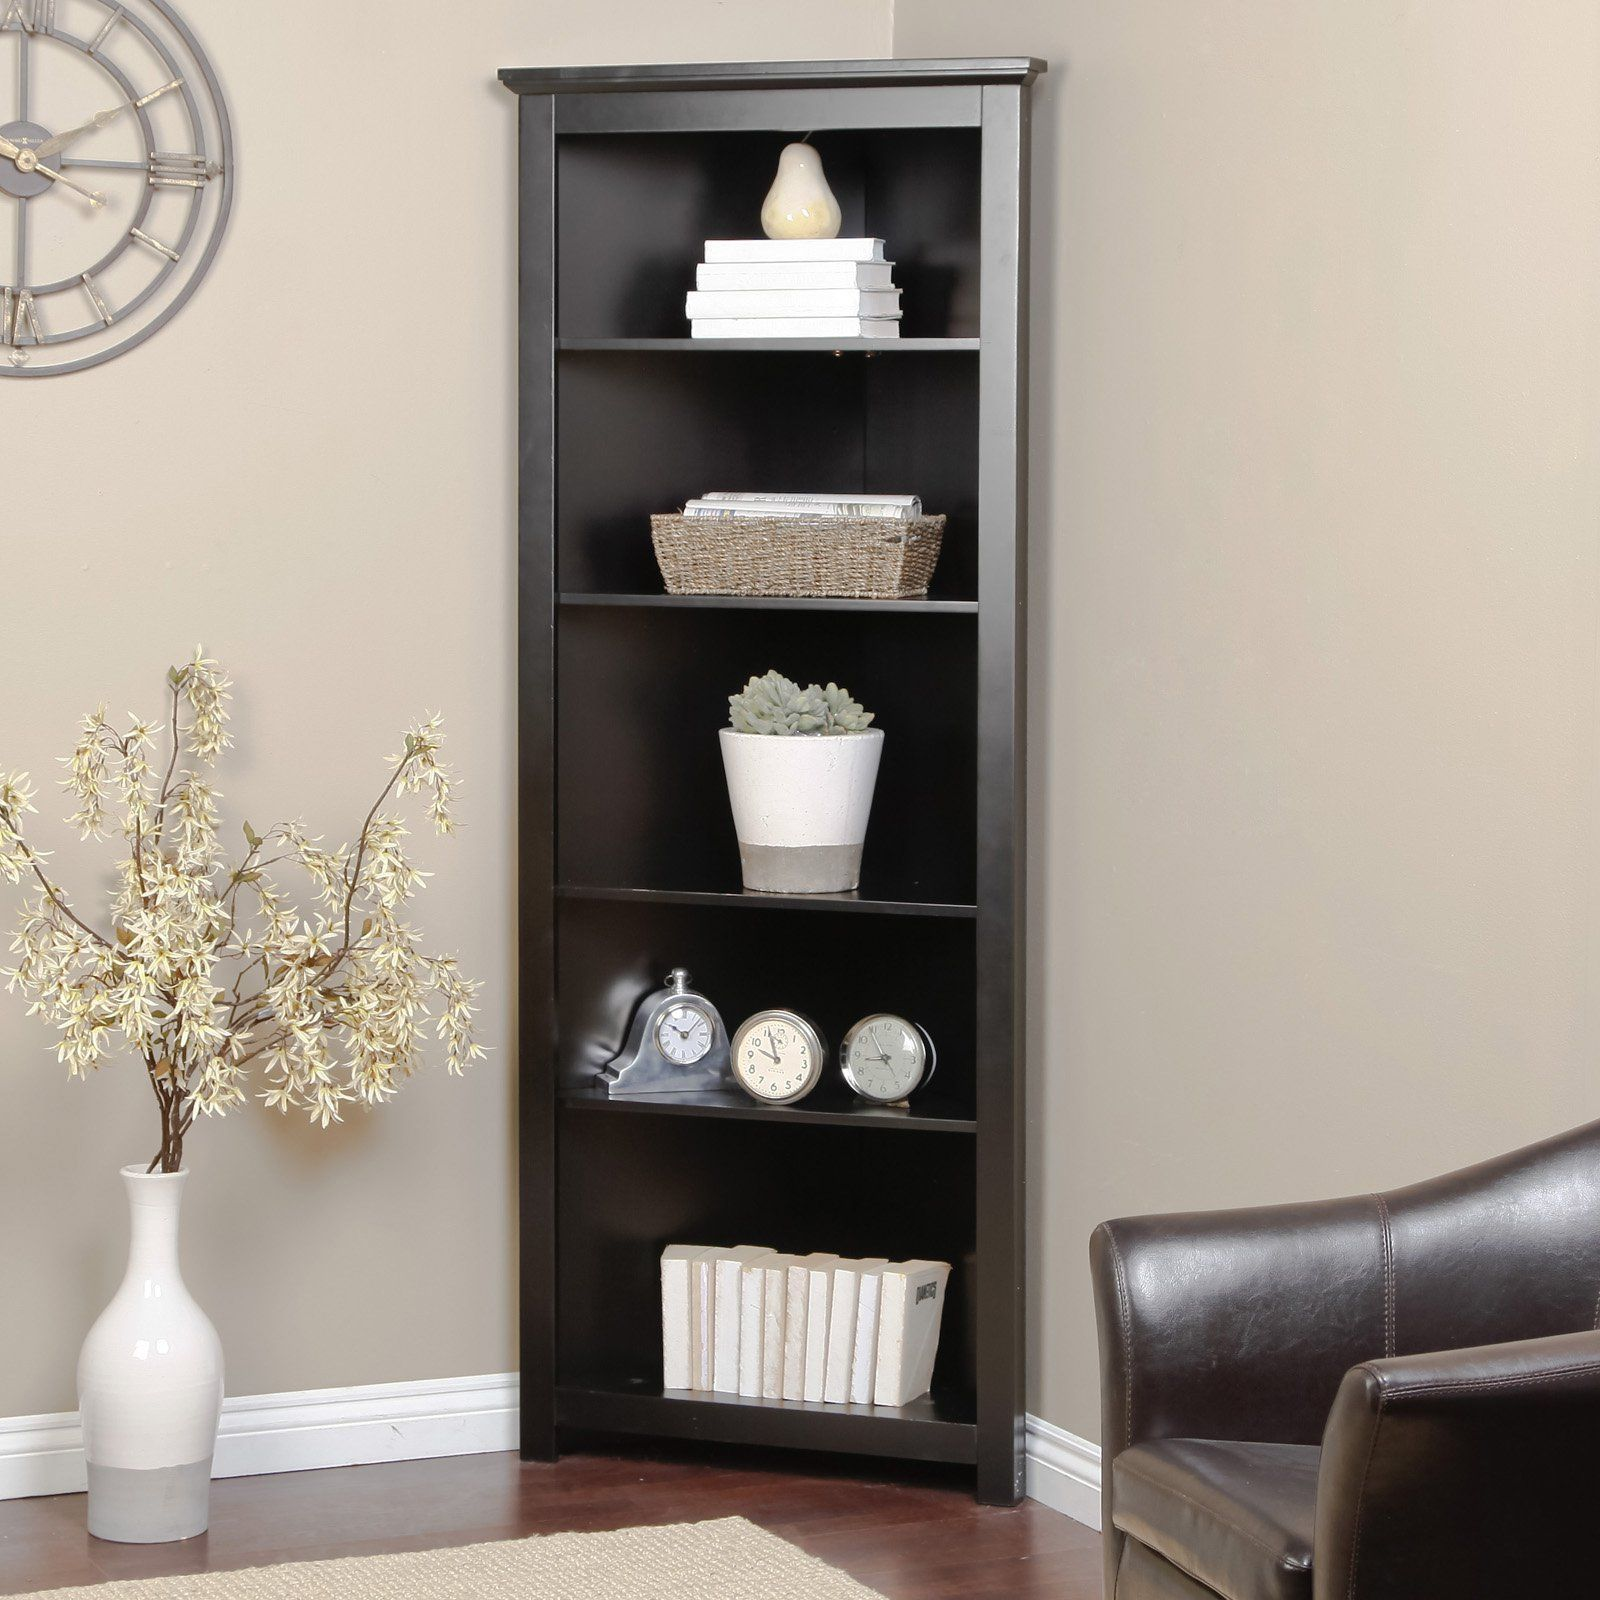 Decorate Your Home And Organize Effectively Can Be A Challenge One Way To Do Both Is To Add Corner Cabinet Living Room Corner Bookshelves Tall Corner Cabinet #small #corner #cabinets #for #living #room